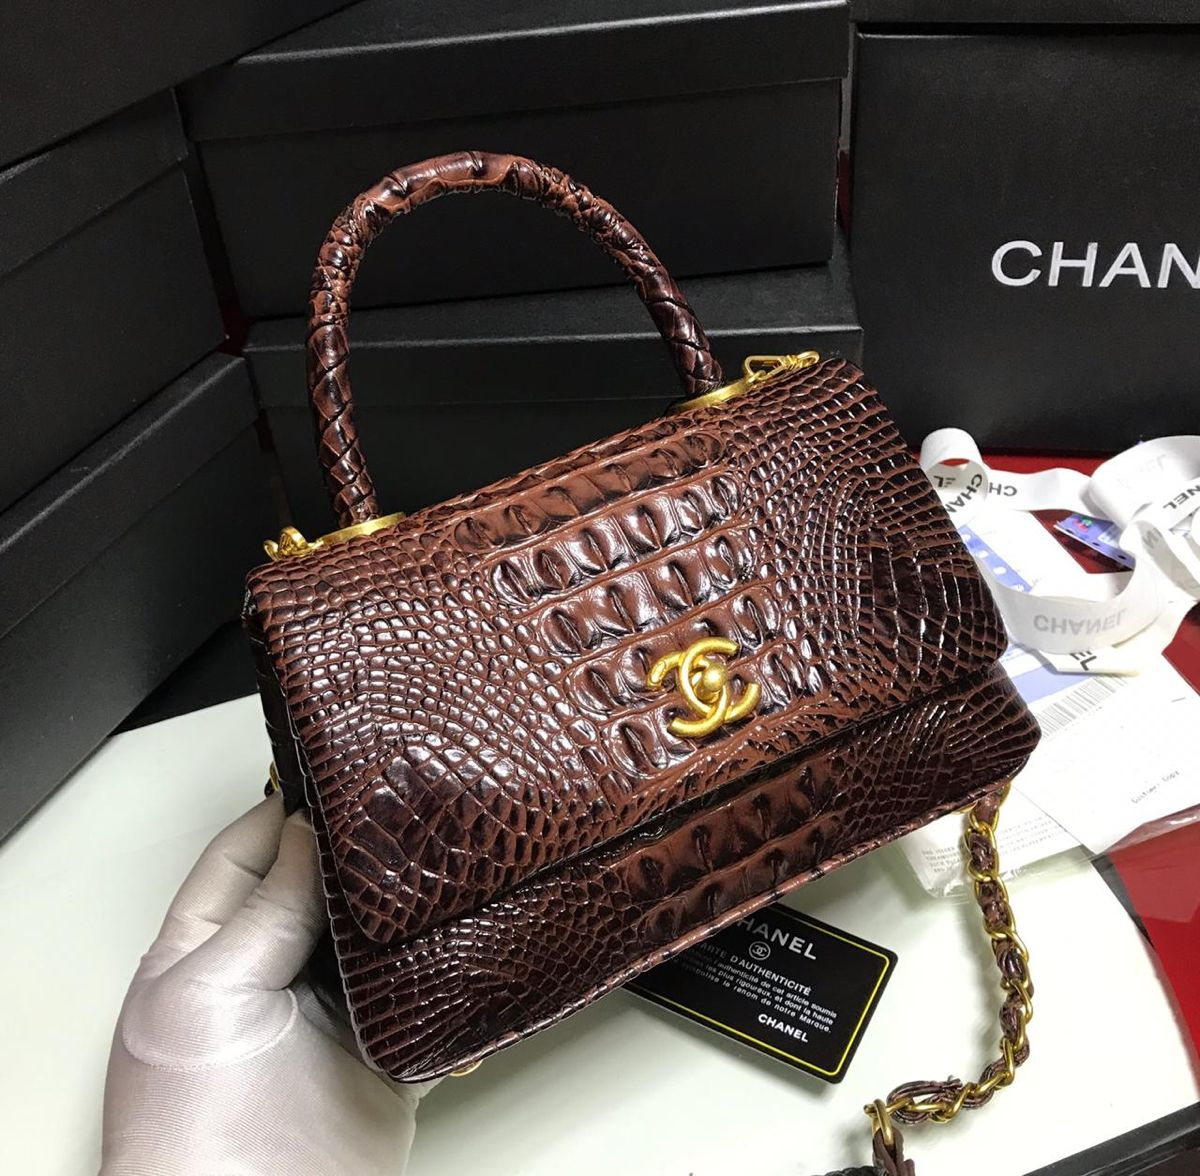 Pin By Fashion2bags On شنط ديور شانيل هيرمز Shoulder Bag Chanel Classic Chanel